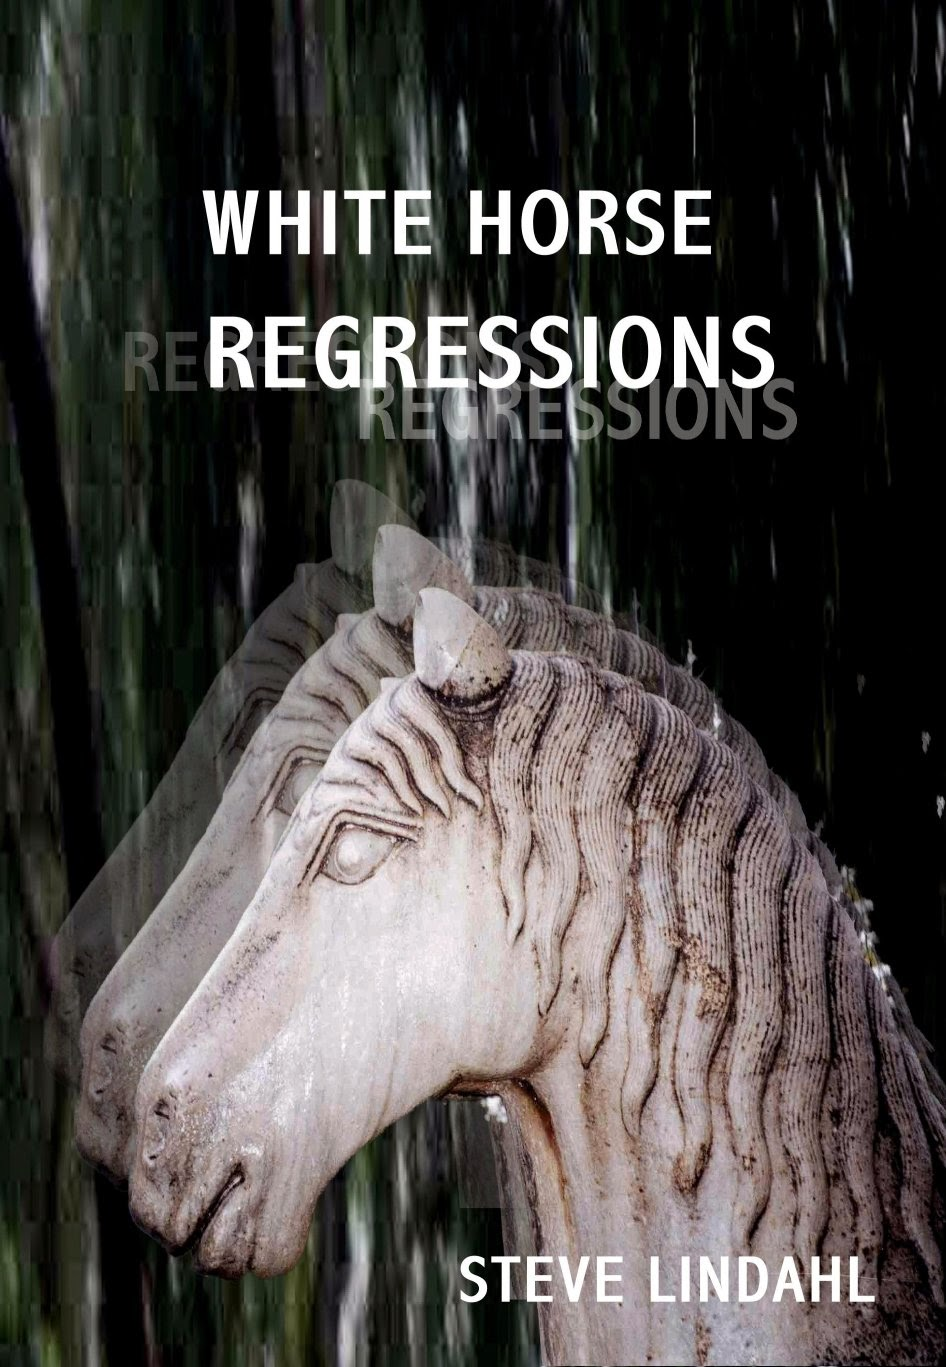 Buy White Horse Regressions